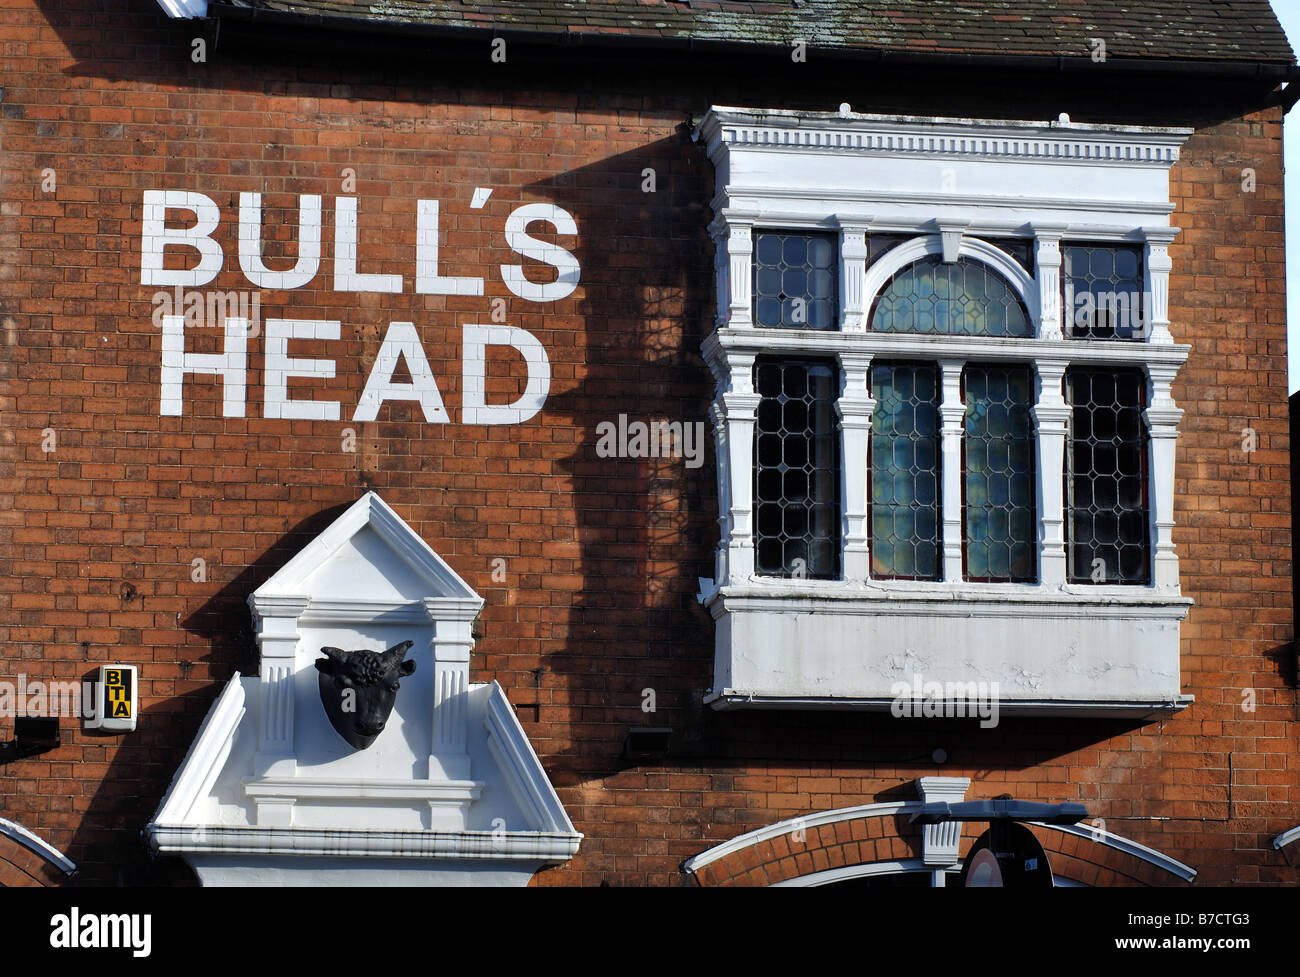 Bull`s Head pub, Moseley, Birmingham, England, UK Stock Photo